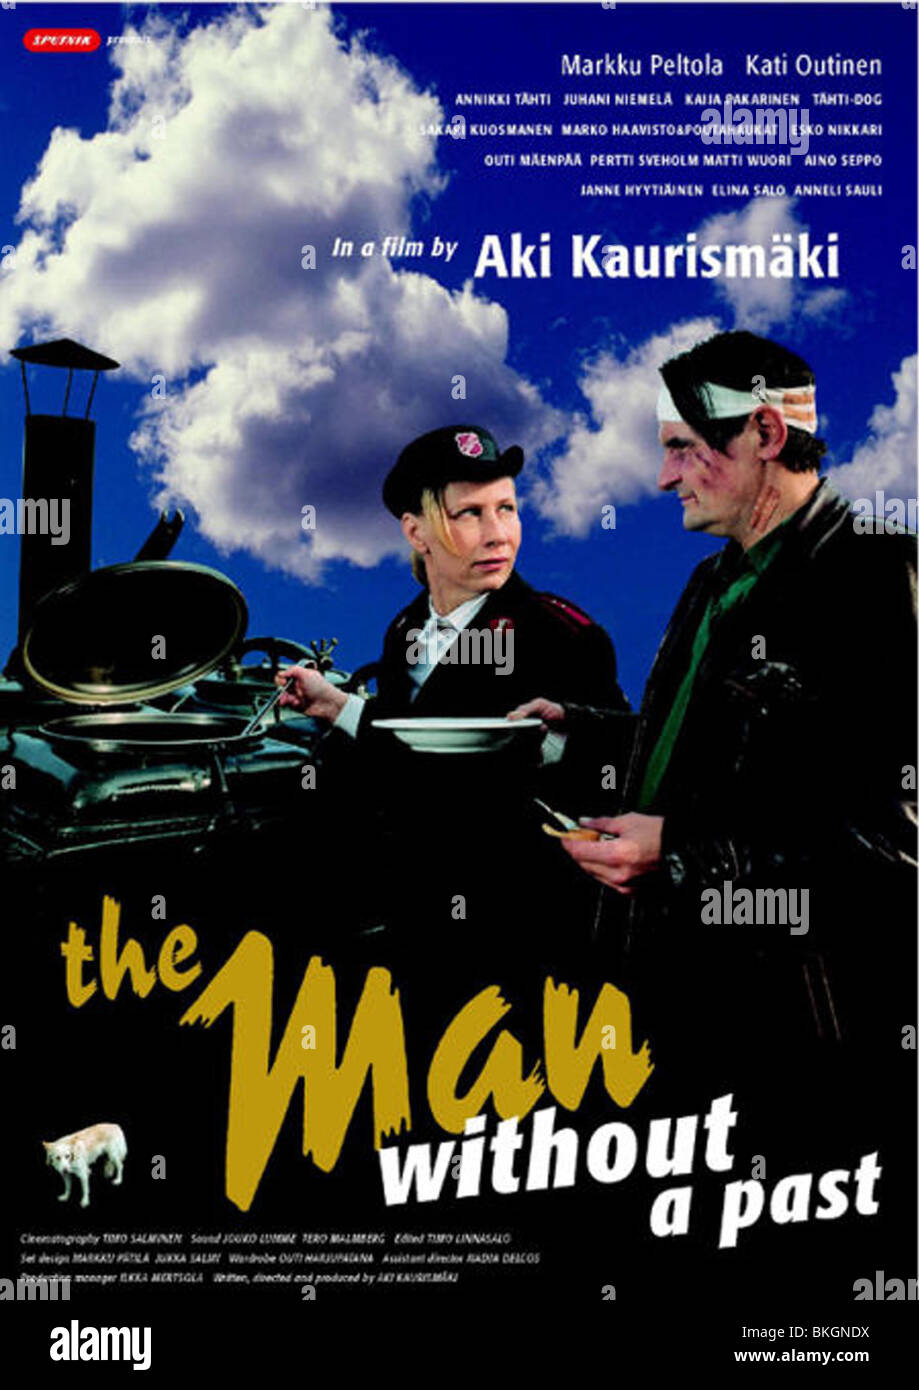 THE MAN WITHOUT A PAST (2002) POSTER MWAP 001-06 - Stock Image